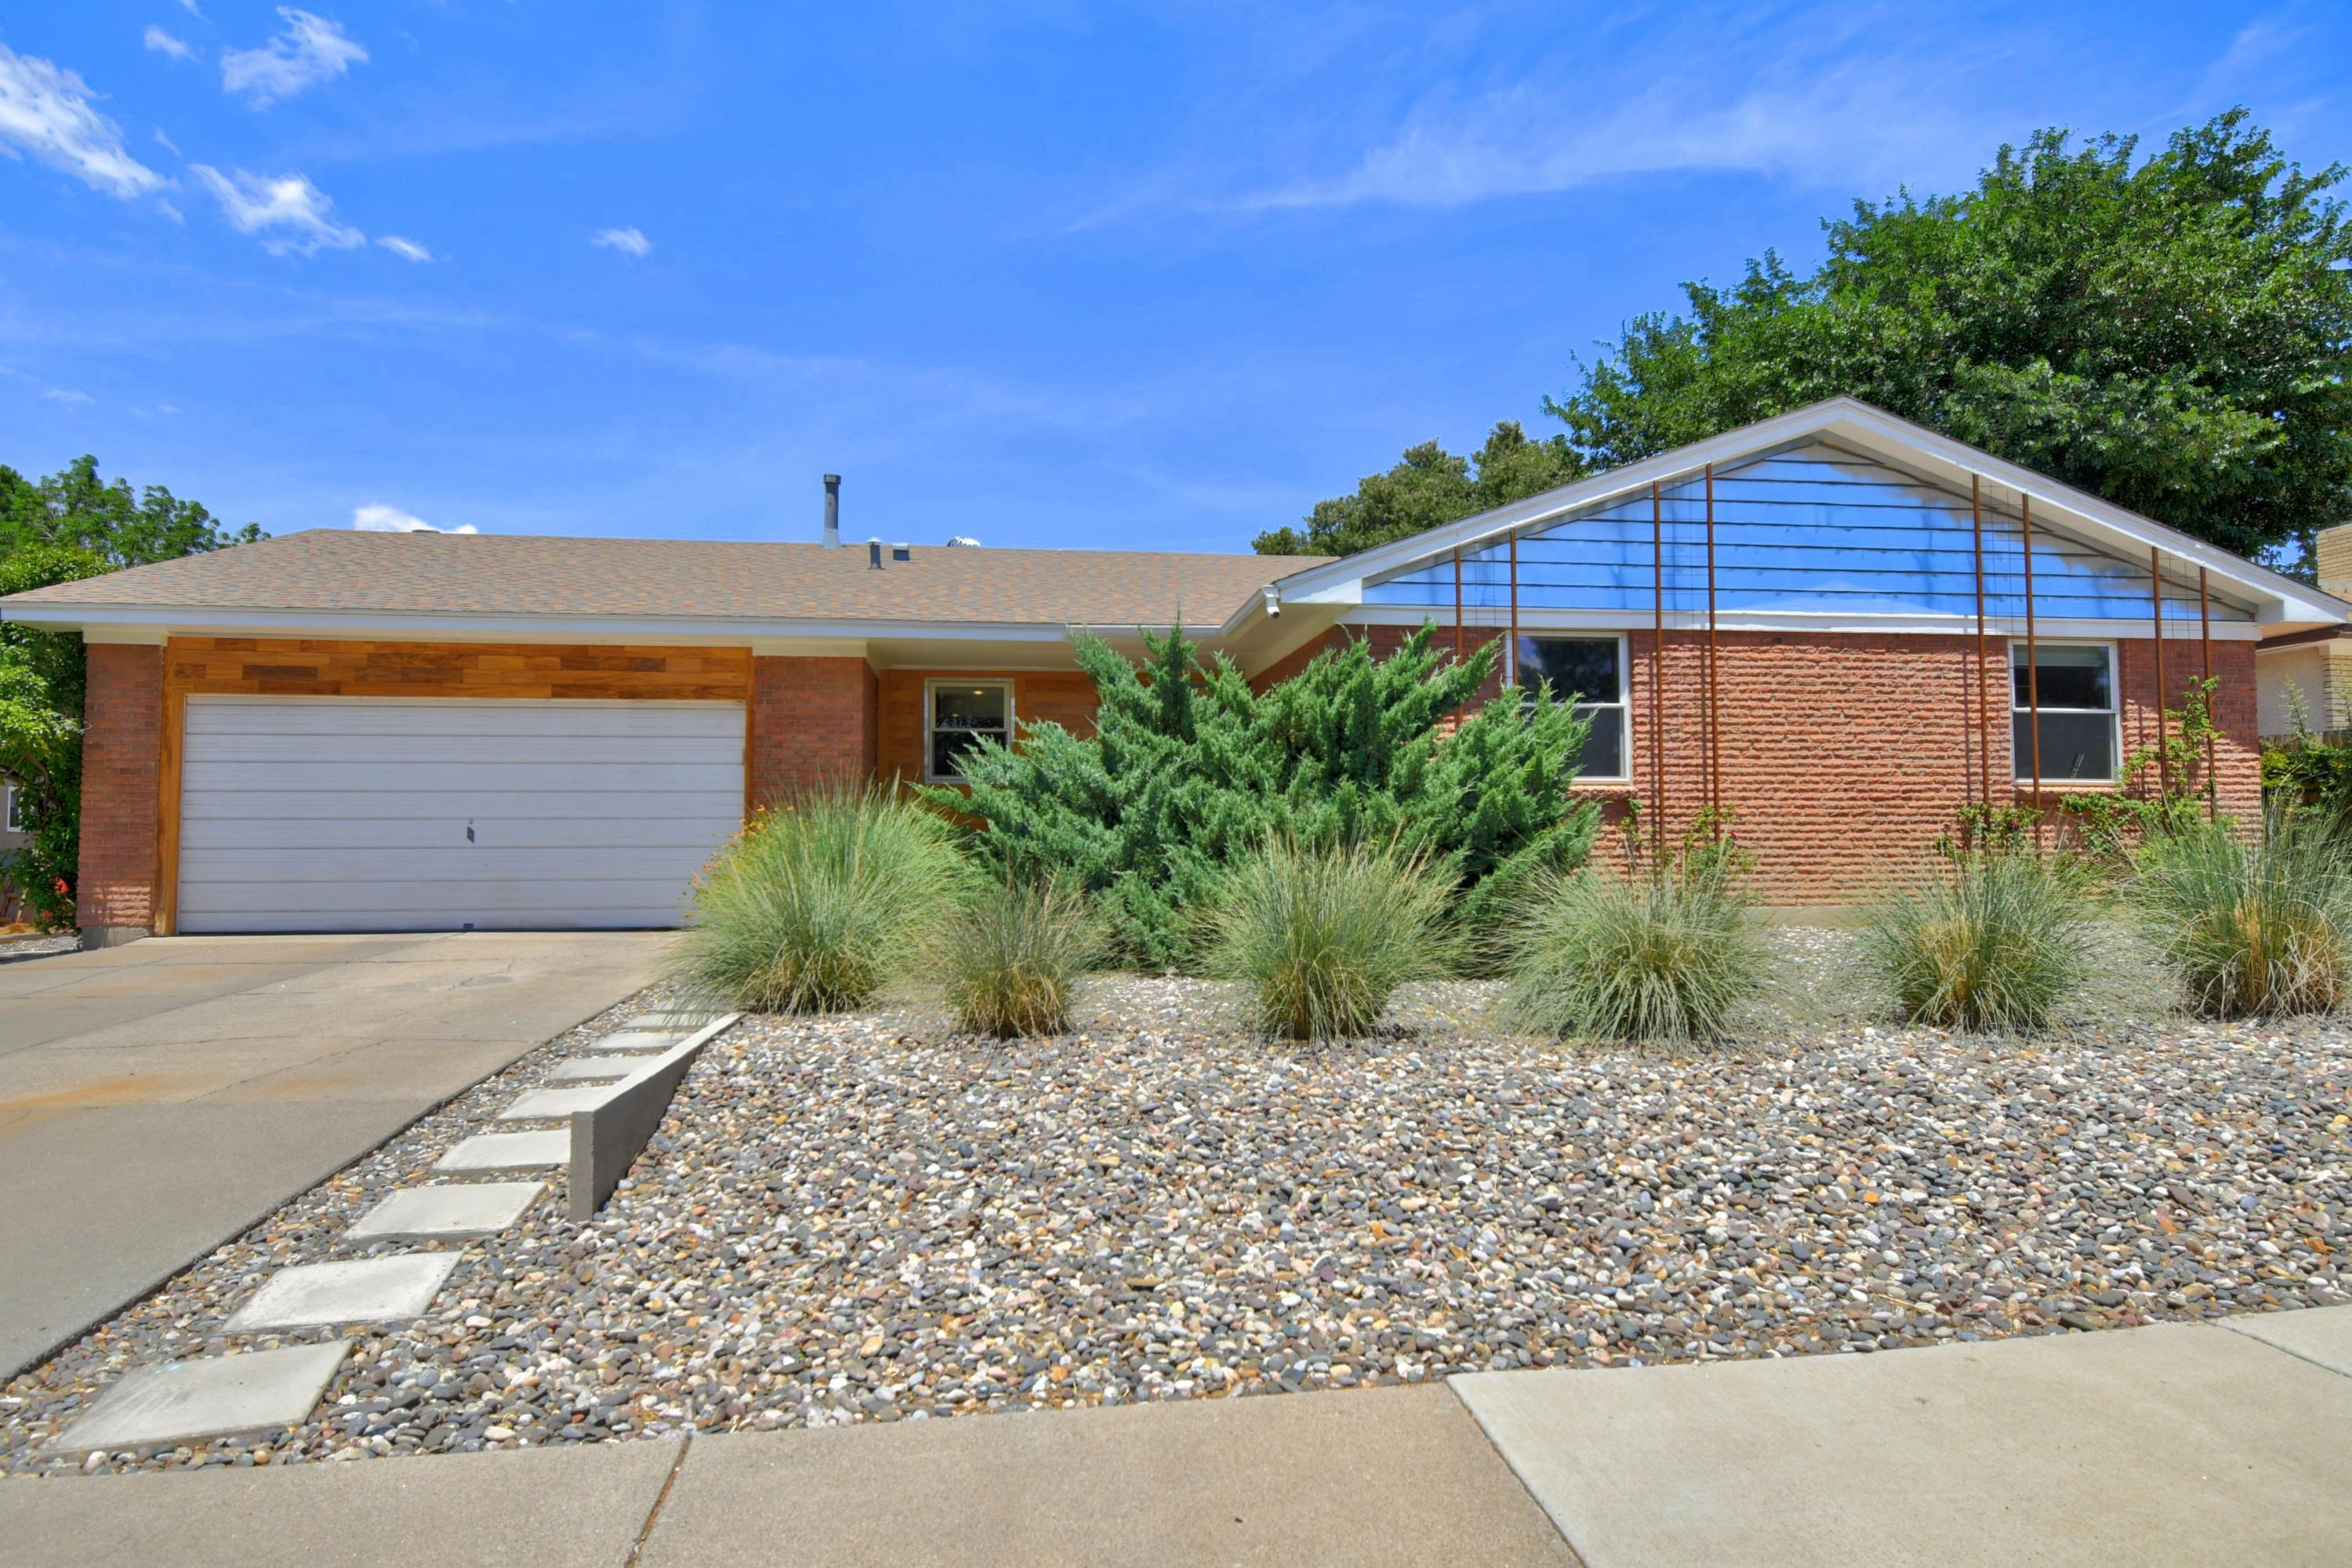 7505 MCNERNEY Avenue NE Property Photo - Albuquerque, NM real estate listing